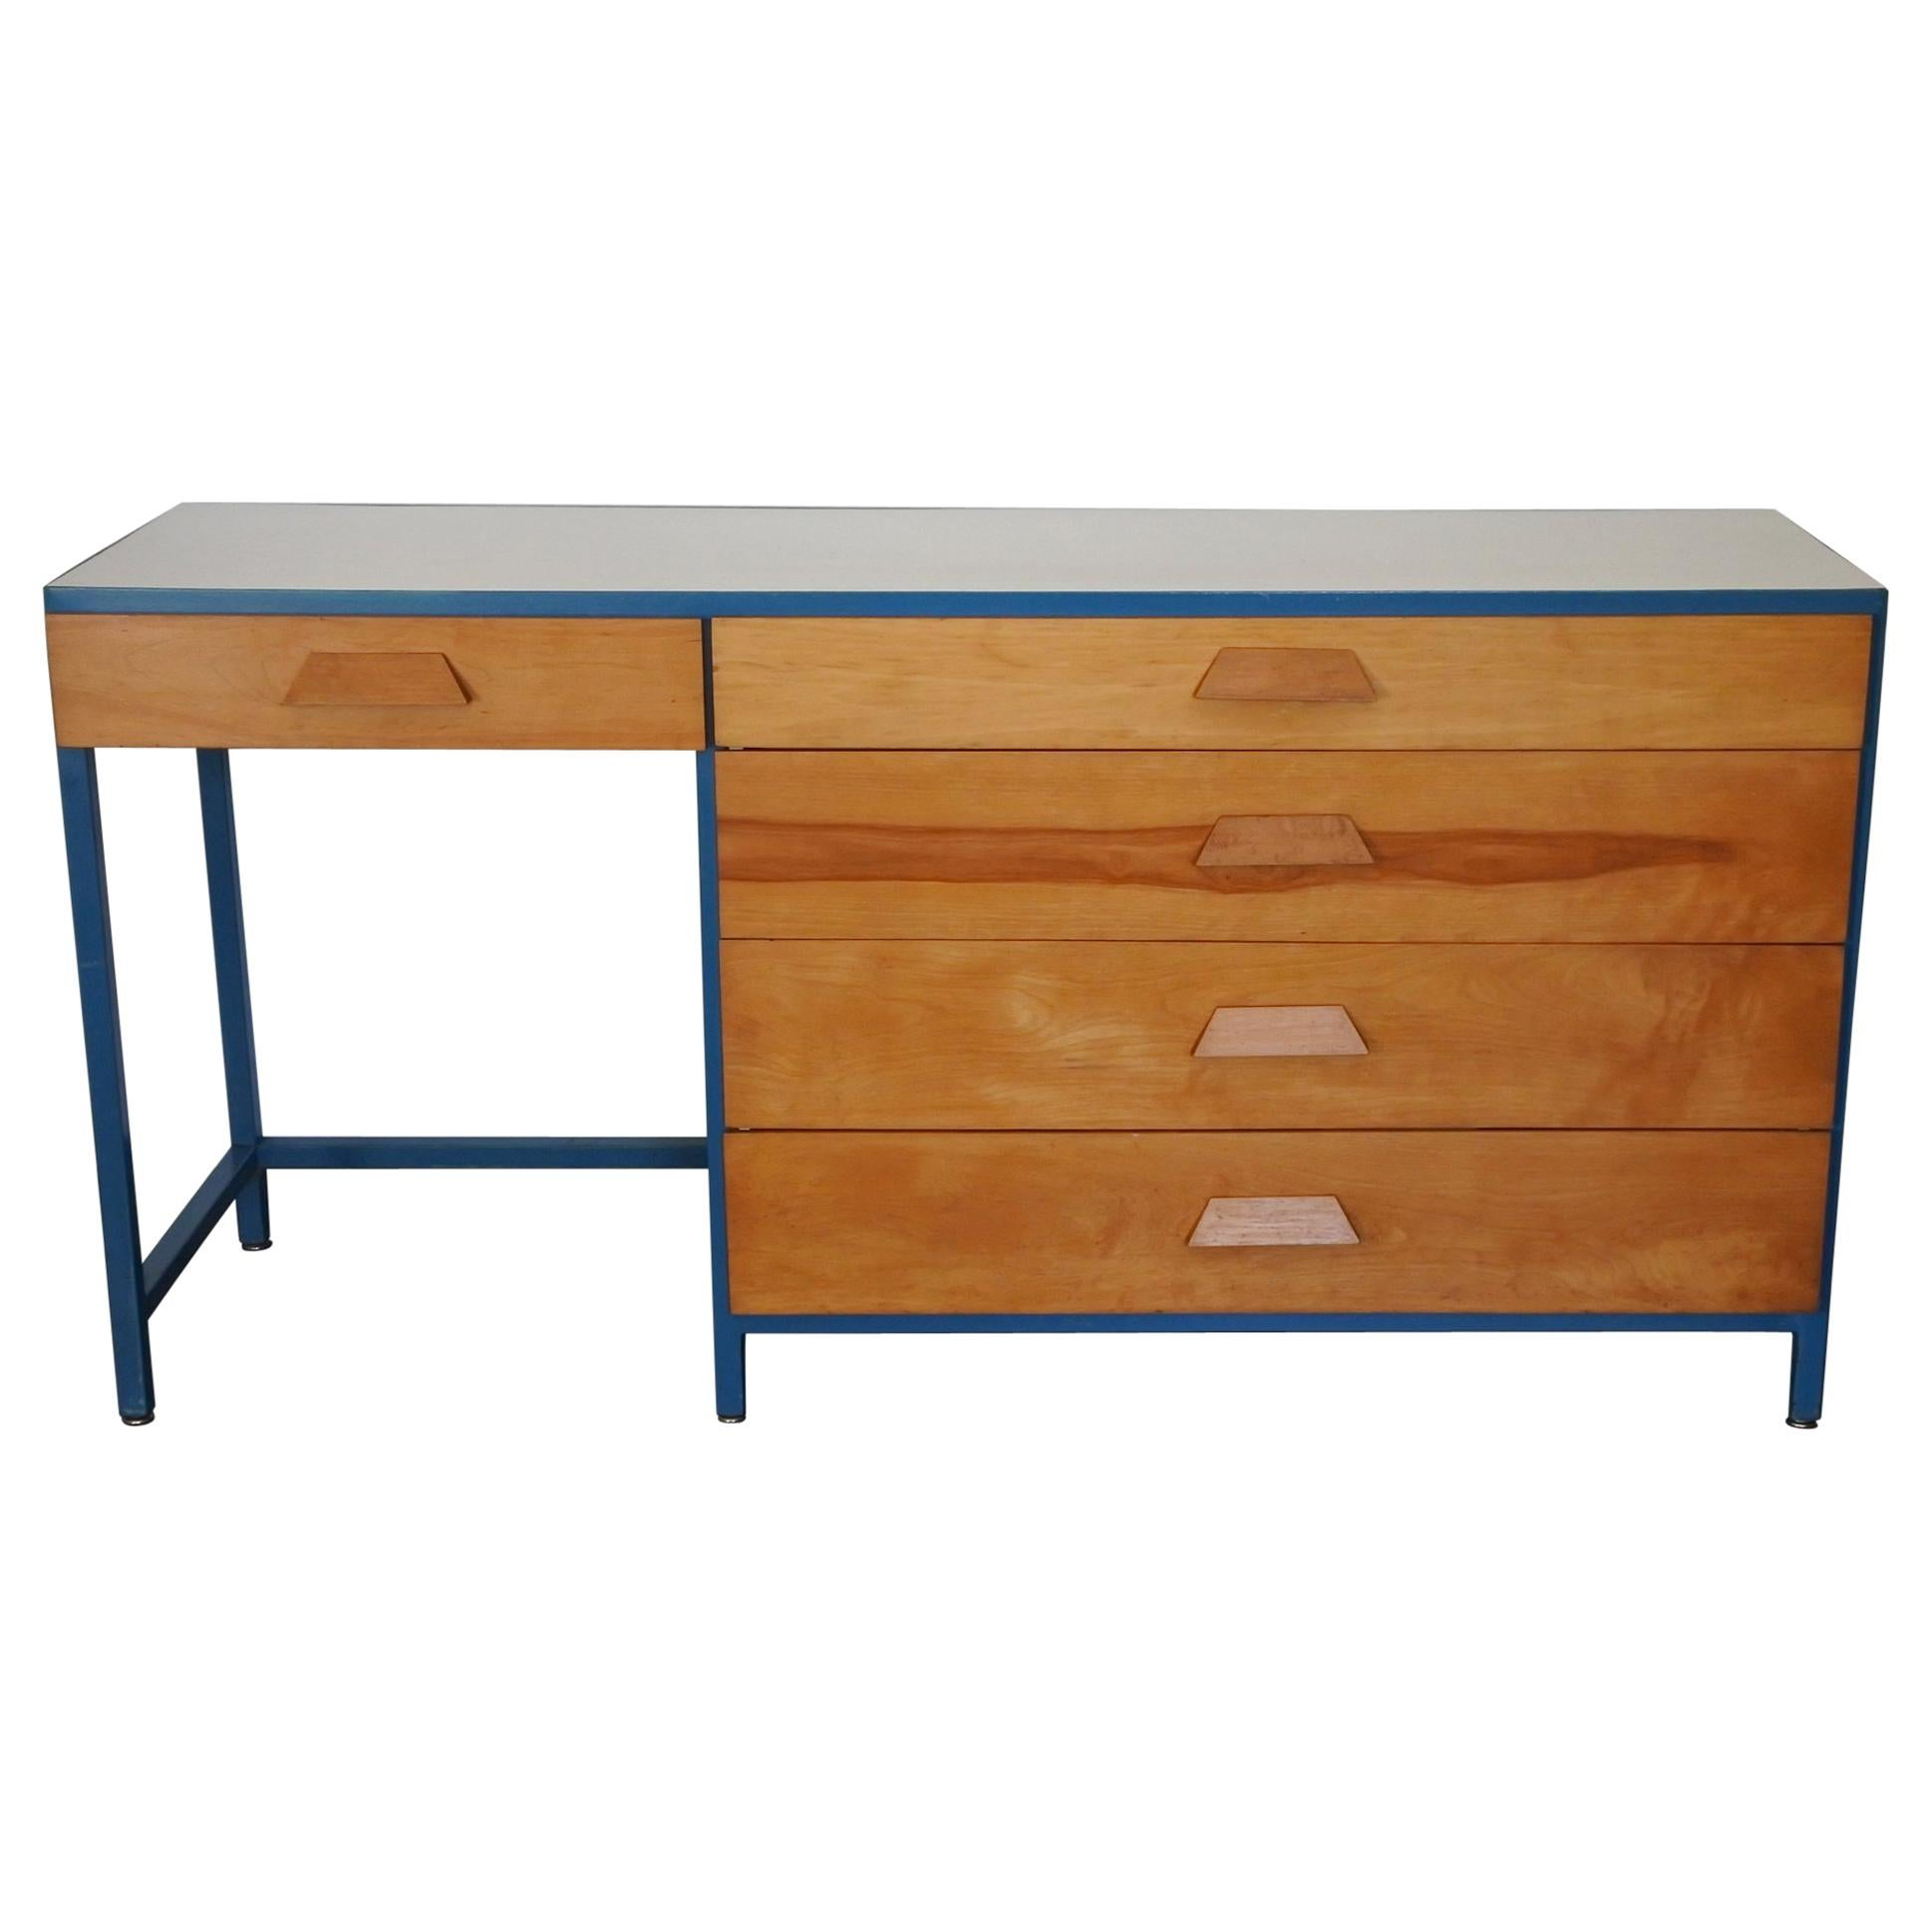 Steel Frame and Maple Vanity and Dresser Attributed to Vista of California, USA